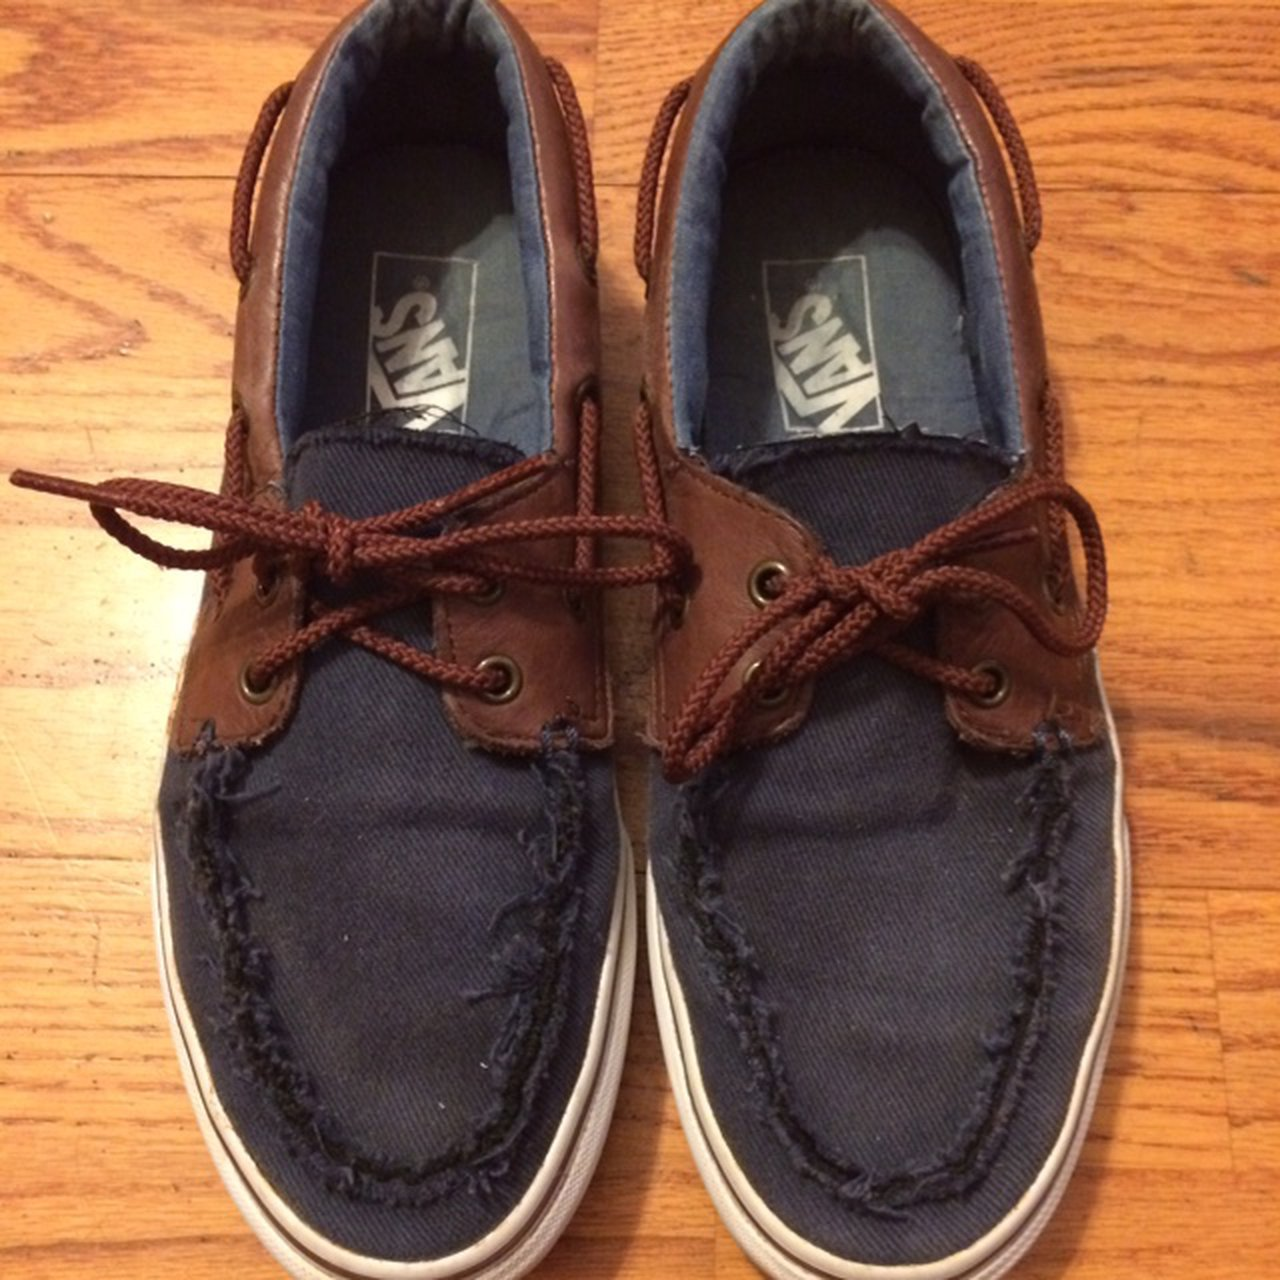 I've posted boat shoes, but how about skate shoes Depop